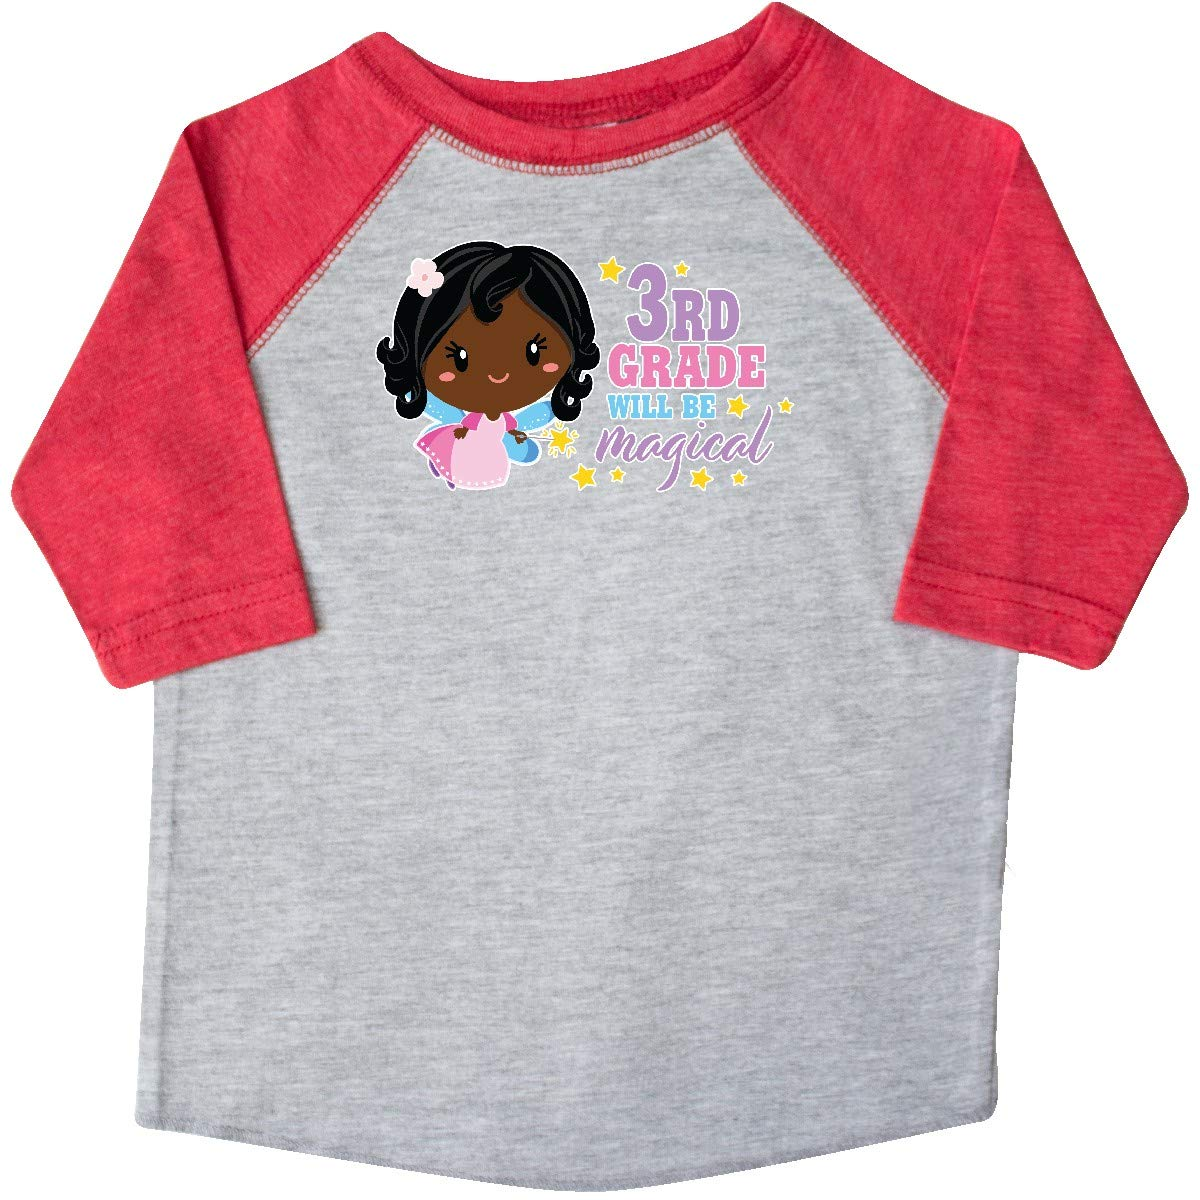 inktastic 3rd Grade Will Be Magical with Black Haired Fairy Toddler T-Shirt